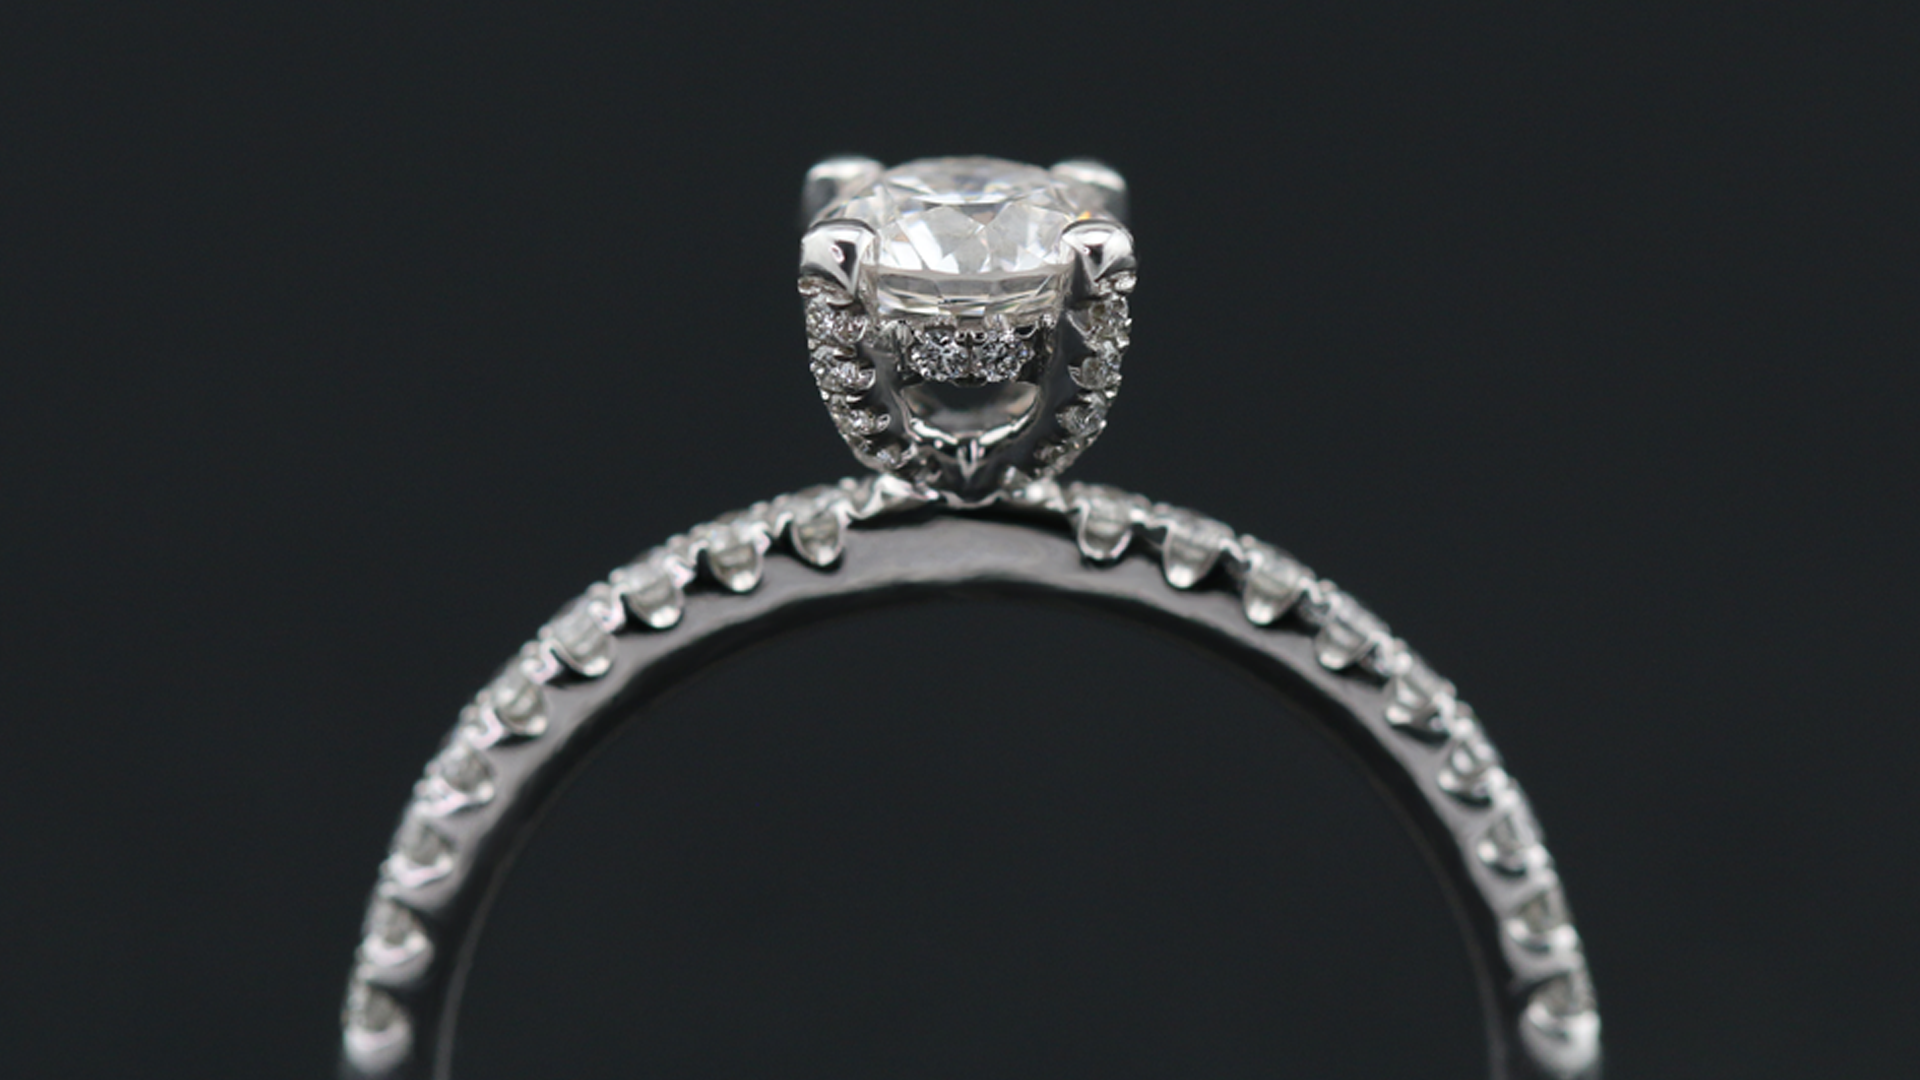 18K White Gold Hidden Halo Solitaire Engagement Ring